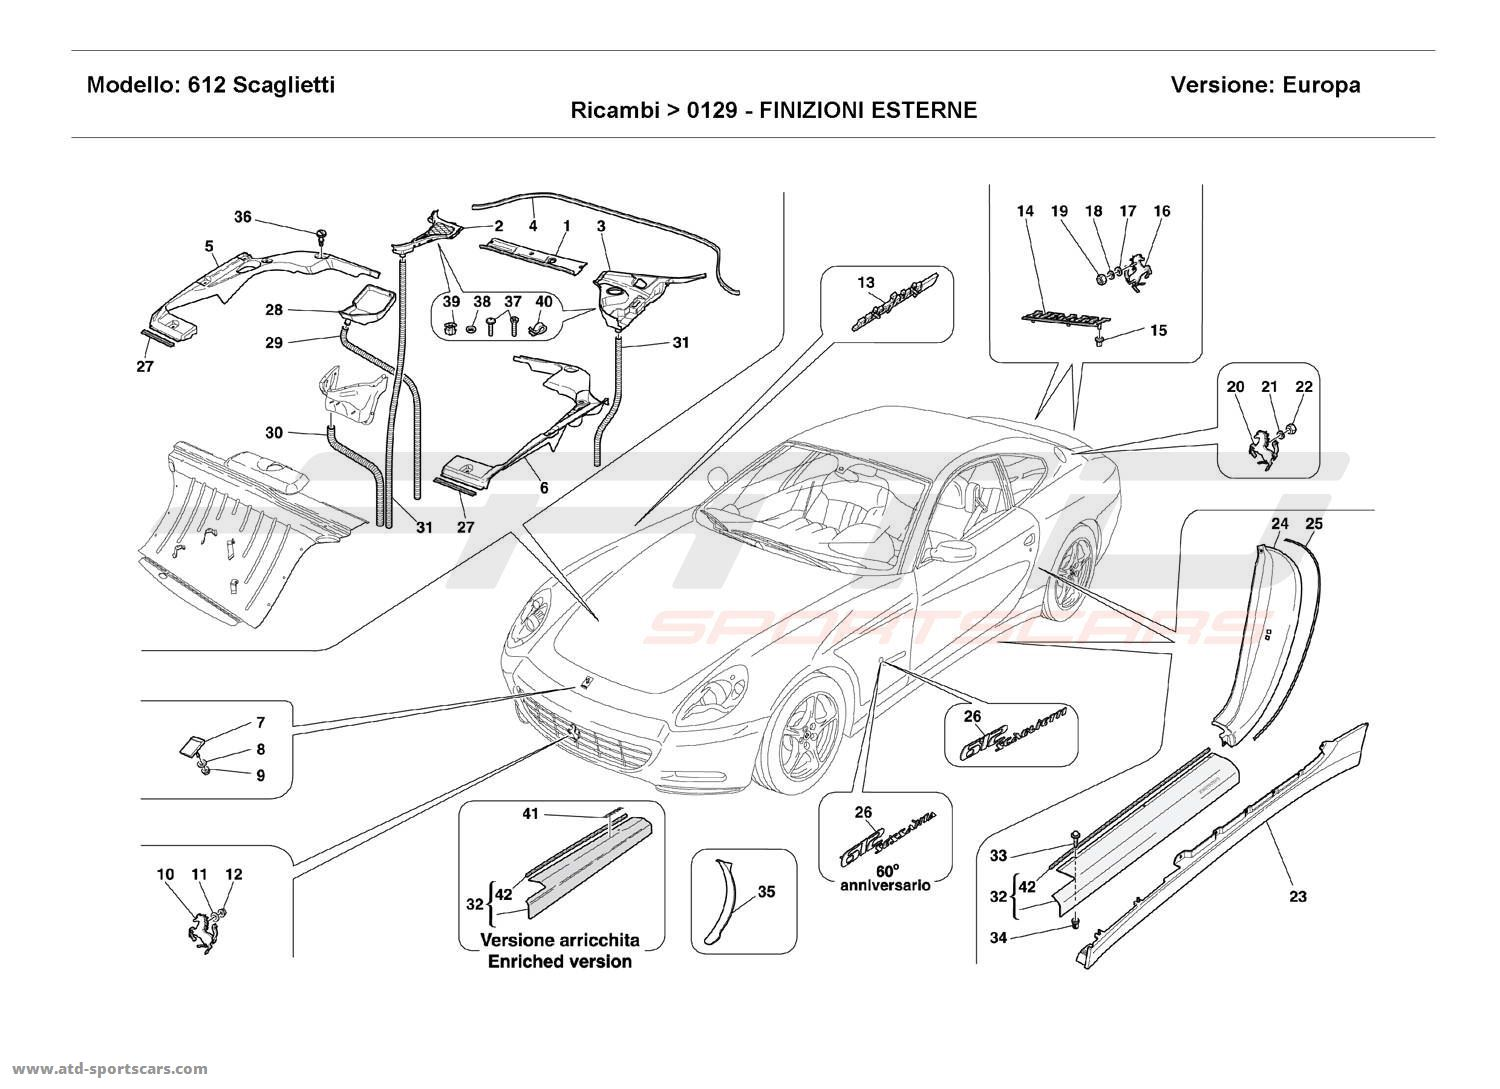 Ferrari 612 Scaglietti OUTSIDE FINISHINGS parts at ATD